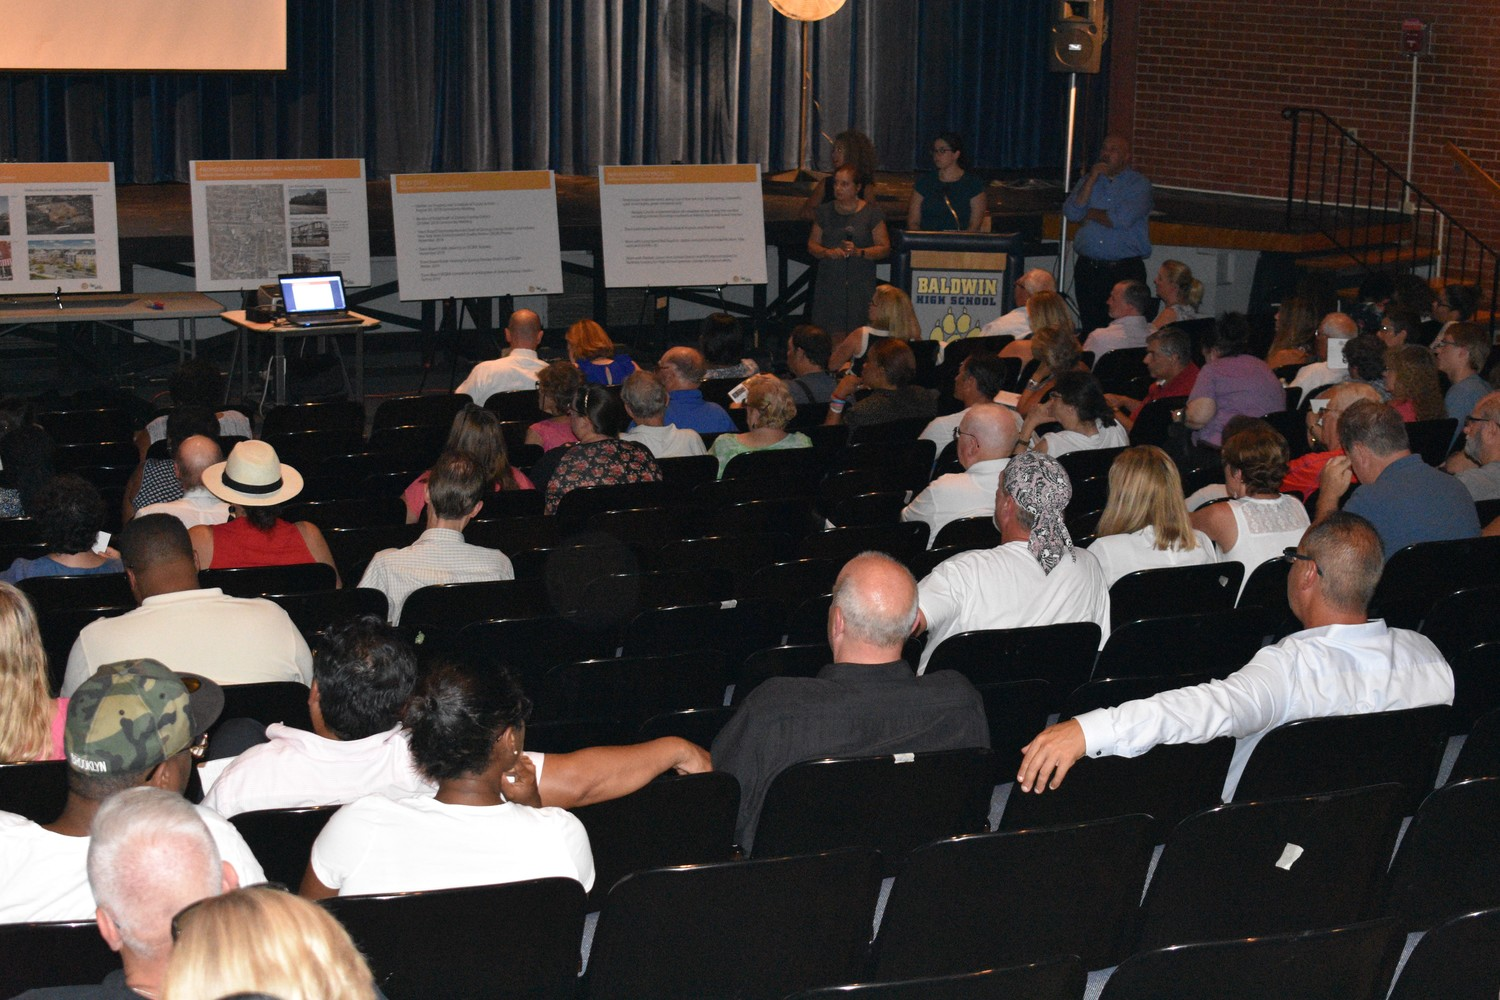 Dozens of Baldwinites attended a town hall meeting on the town's plans for the revitalization of Grand Avenue.